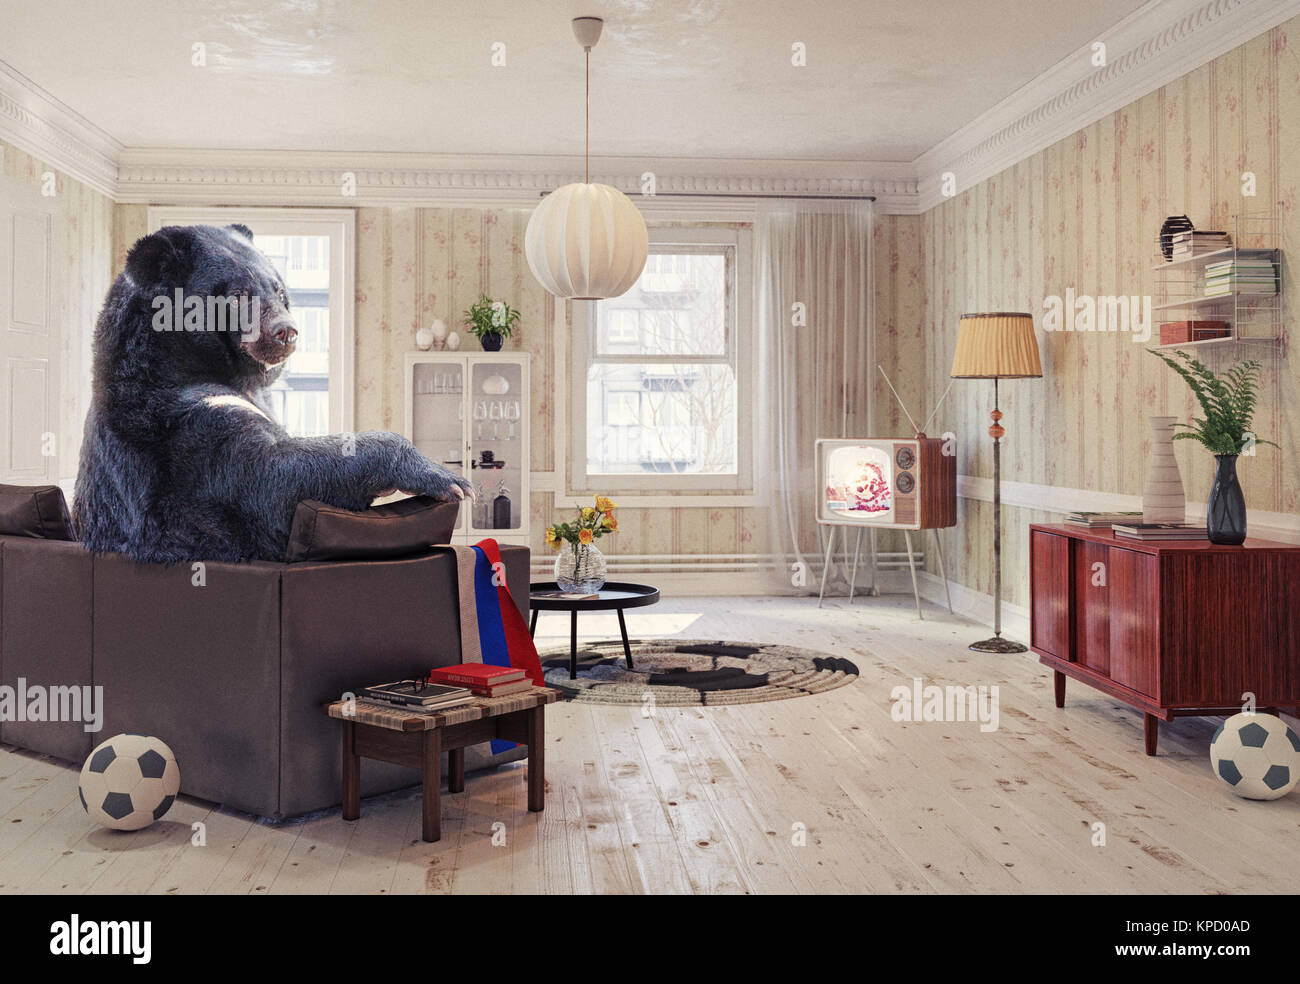 The Russian bear relaxing in the room on the sofa, watching the soccer on tv. Creative illustration. 2018 FIFA World - Stock Image